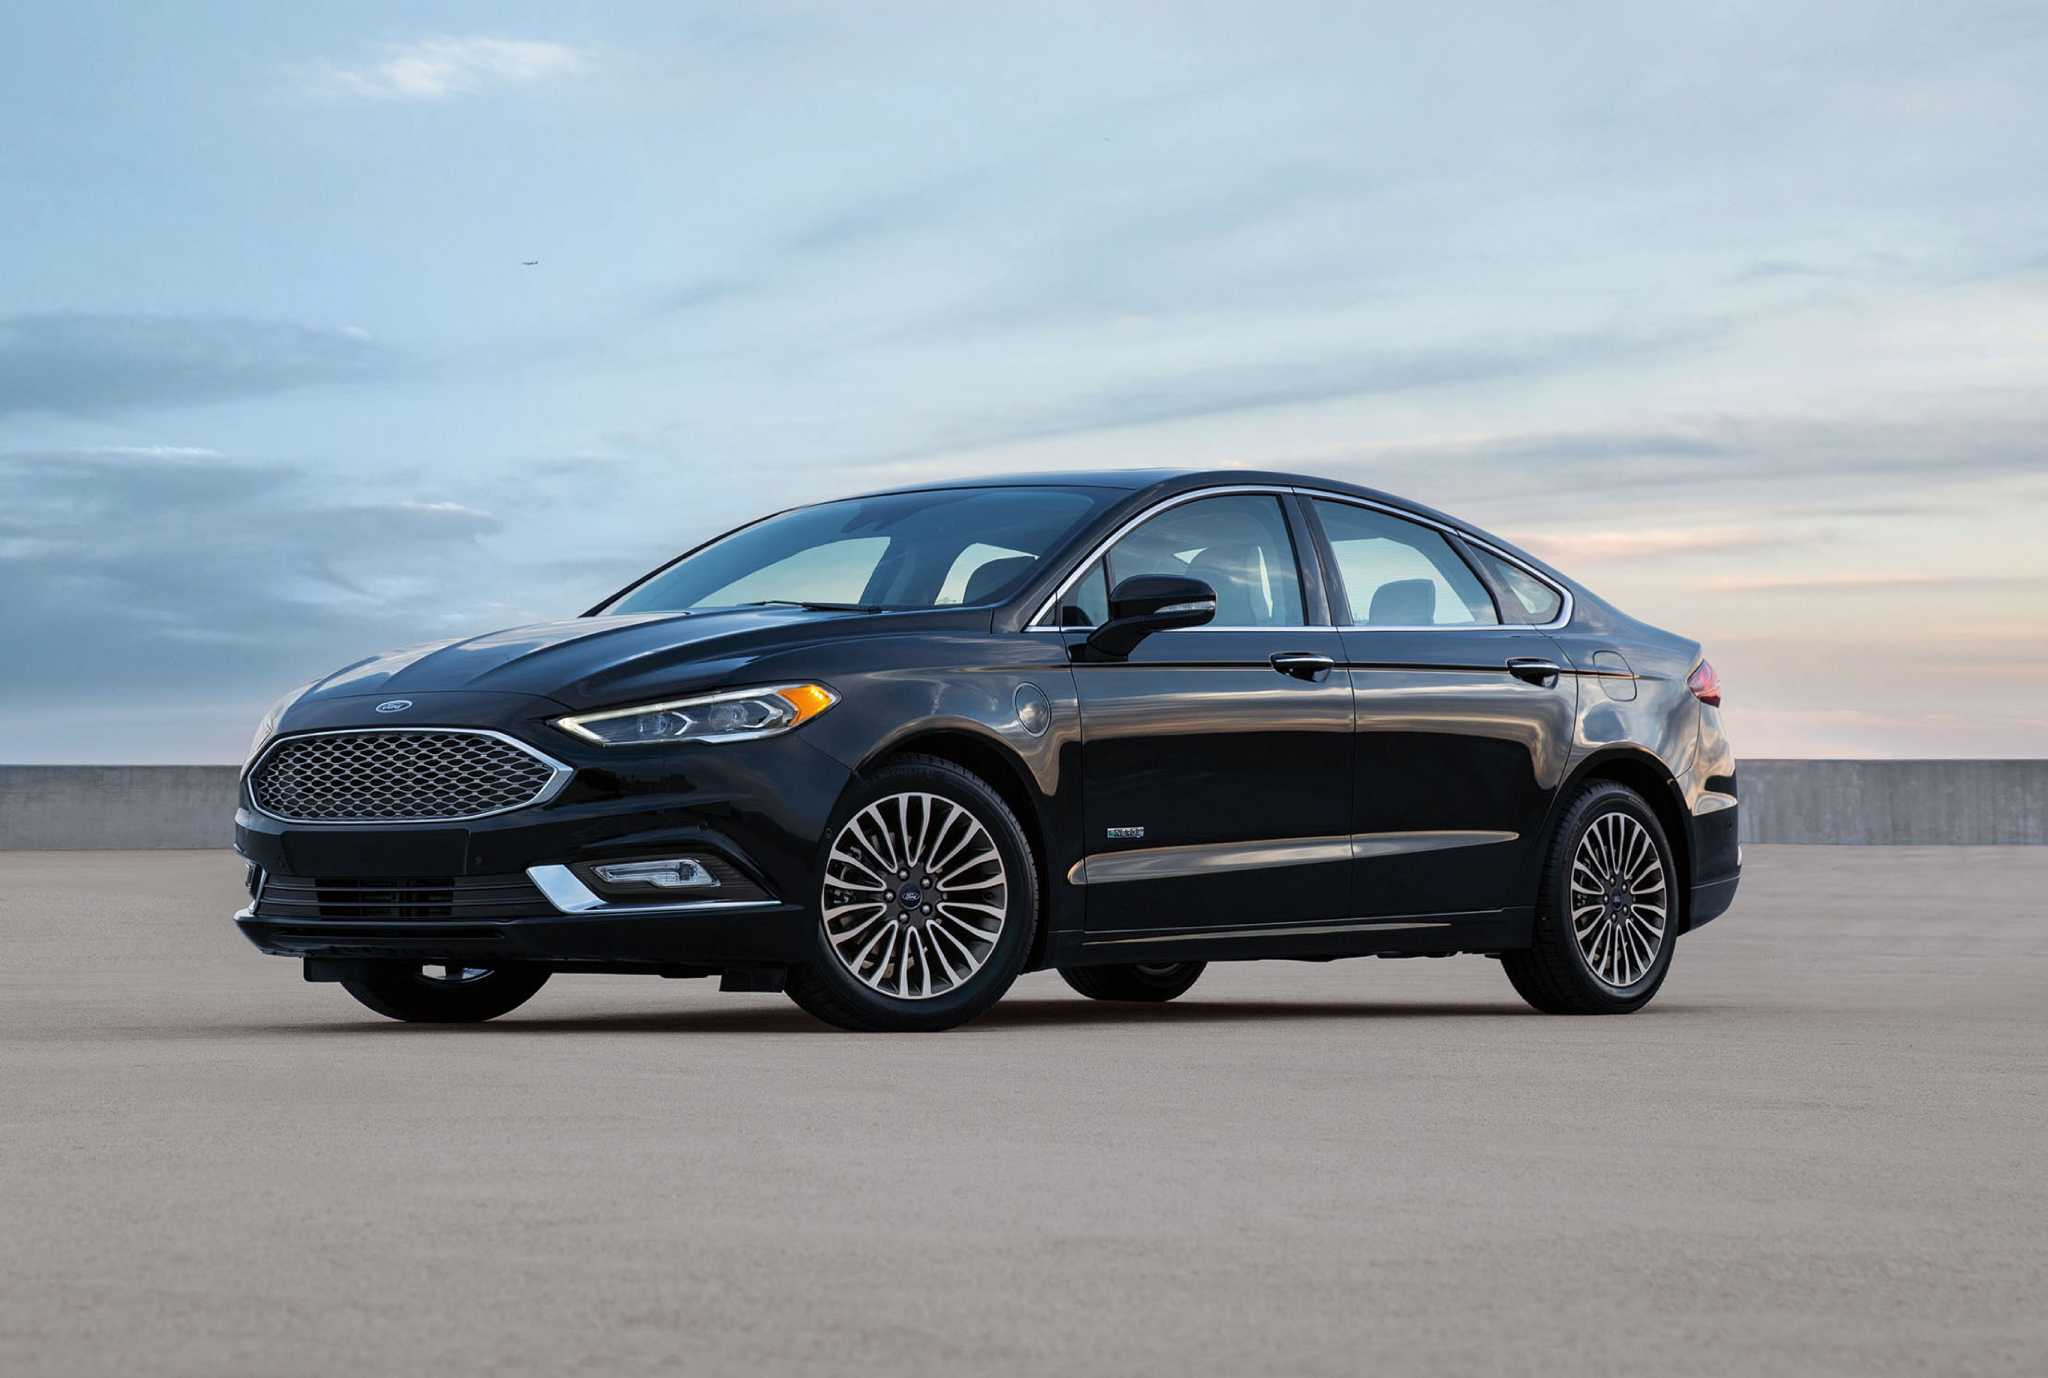 platinum range fusion ford mileage energi hybrid hr hits in fortune the mile plug